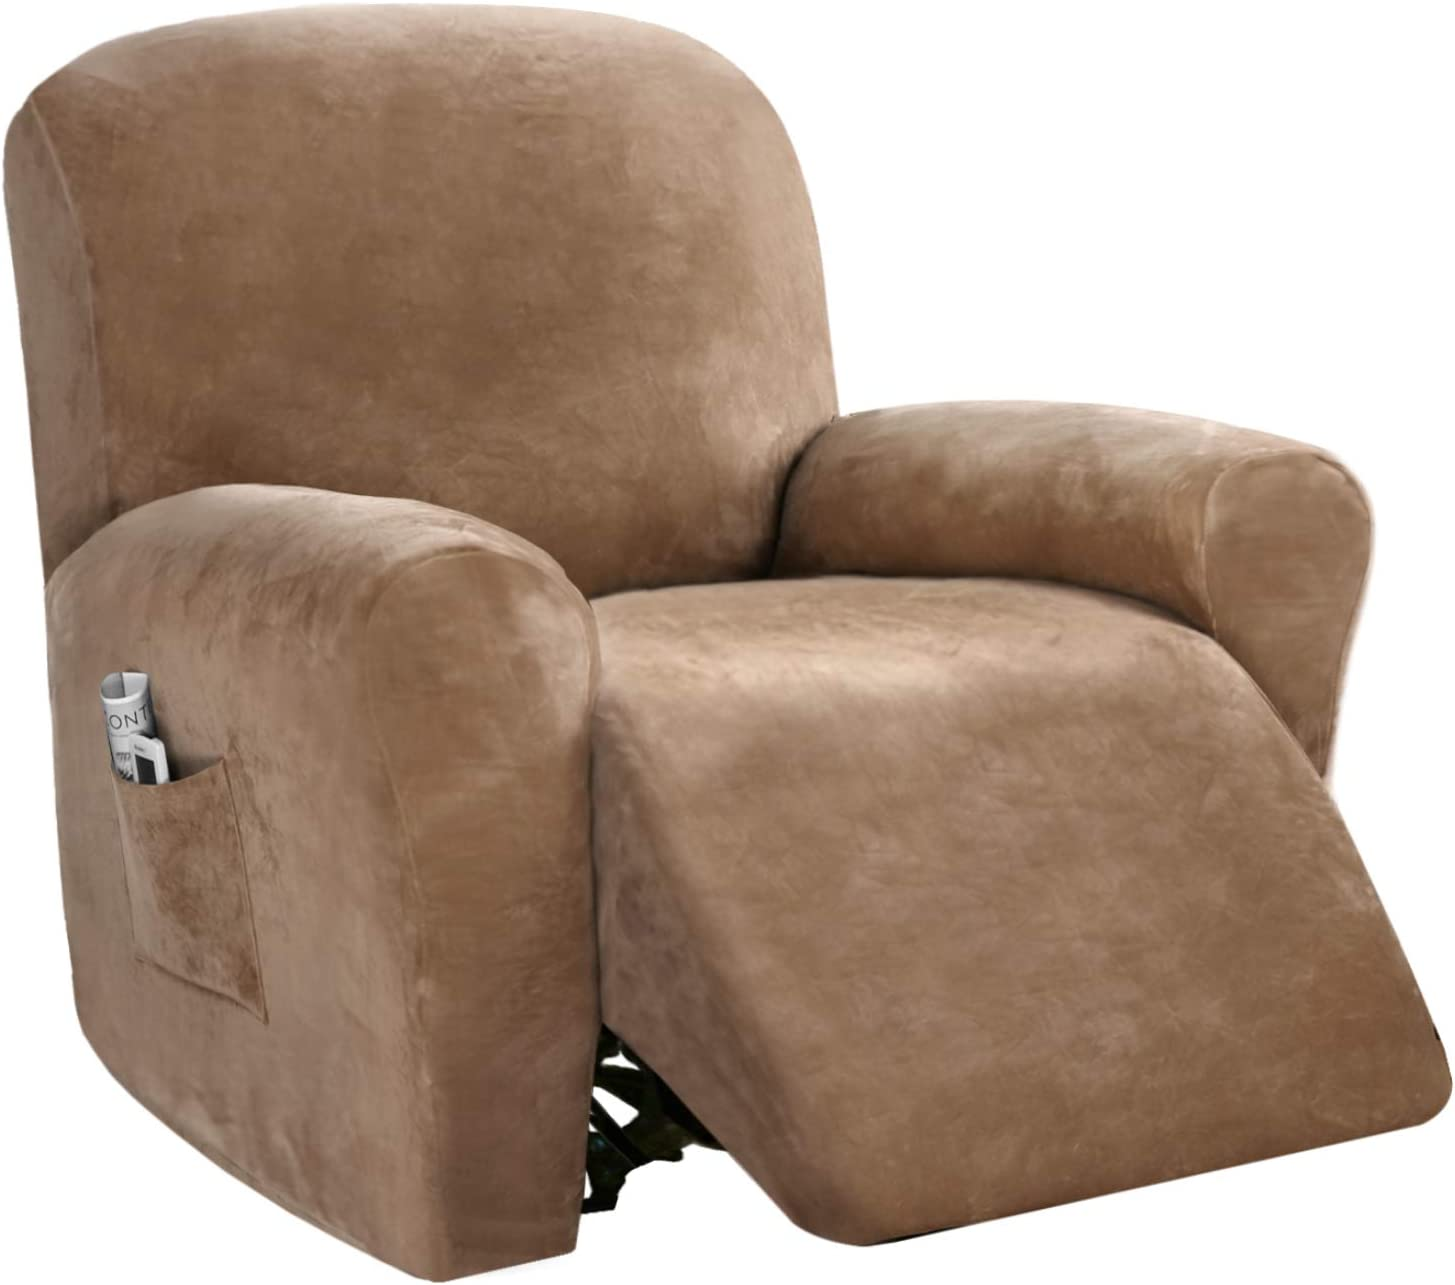 4 Piece Recliner Chair 55% OFF Cover Stretch Reclining Import Couch Rich Velvet